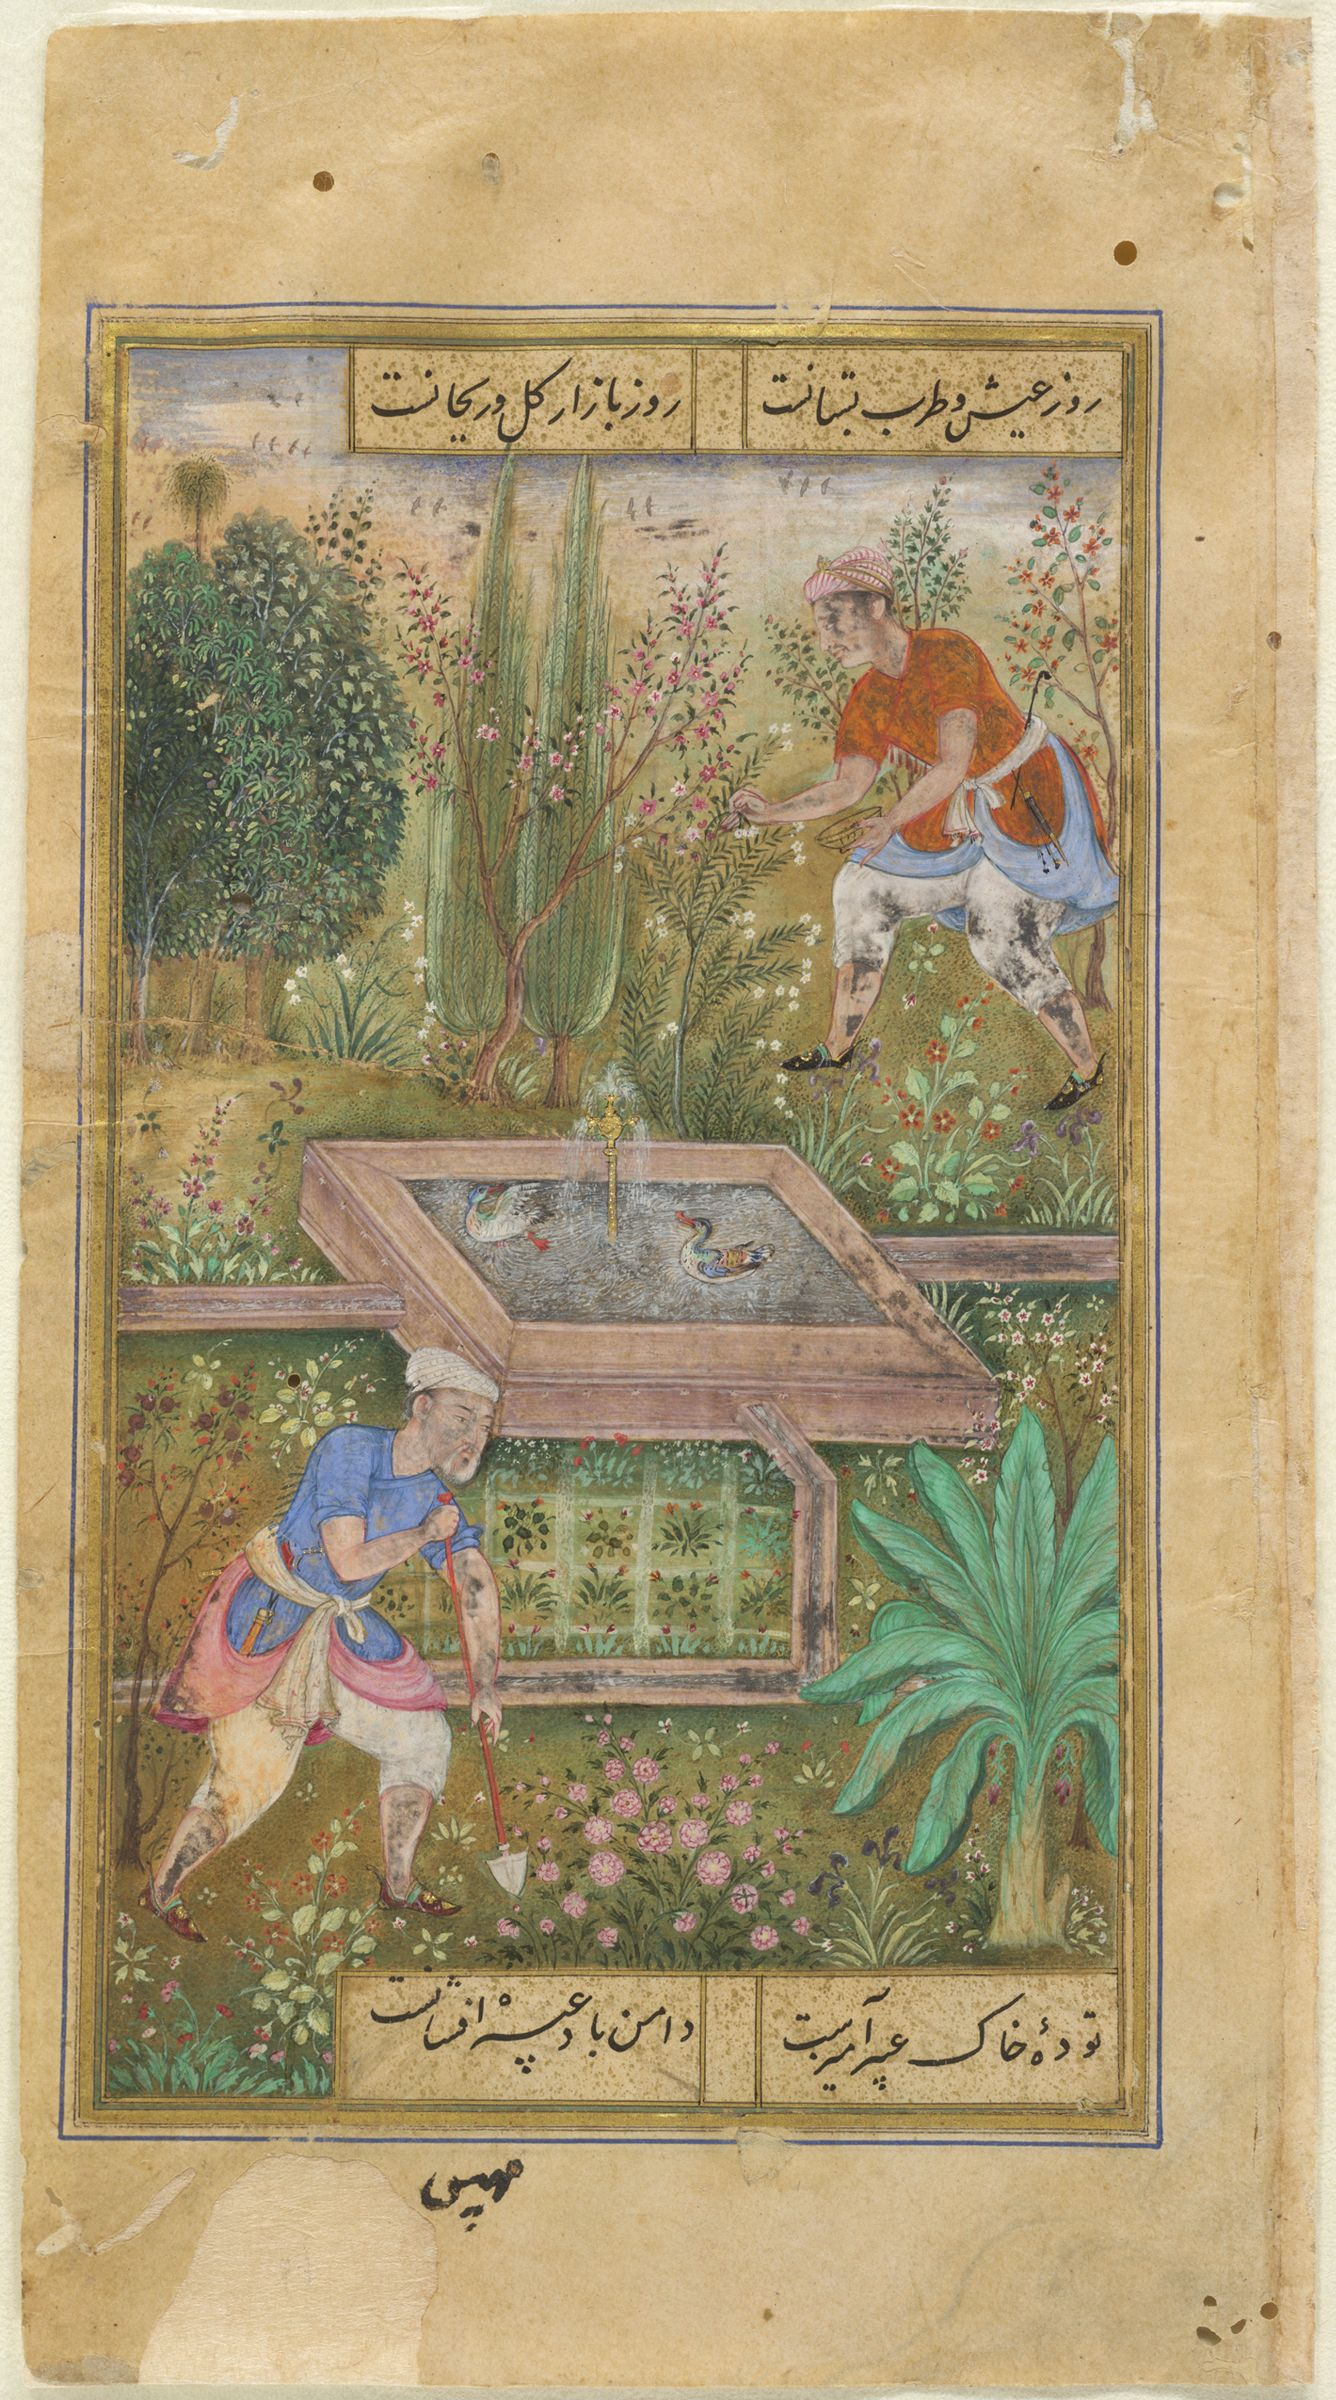 It's The Day For The Garden! (Painting, Recto; Text, Verso), Folio 173 From A Manuscript Of The Divan Of Anvari